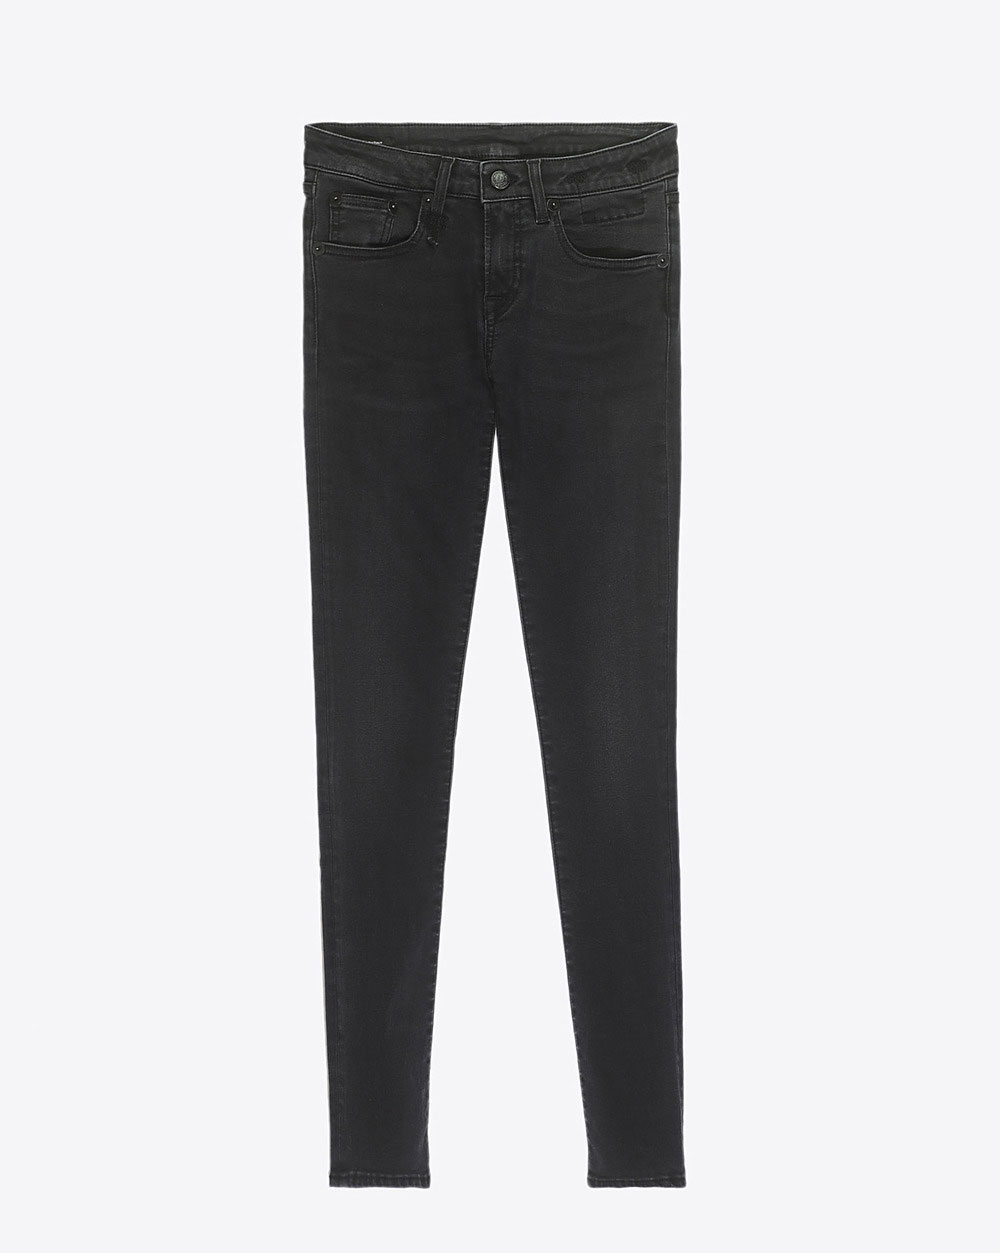 R13 Denim Collection Kate Skinny - Black Country